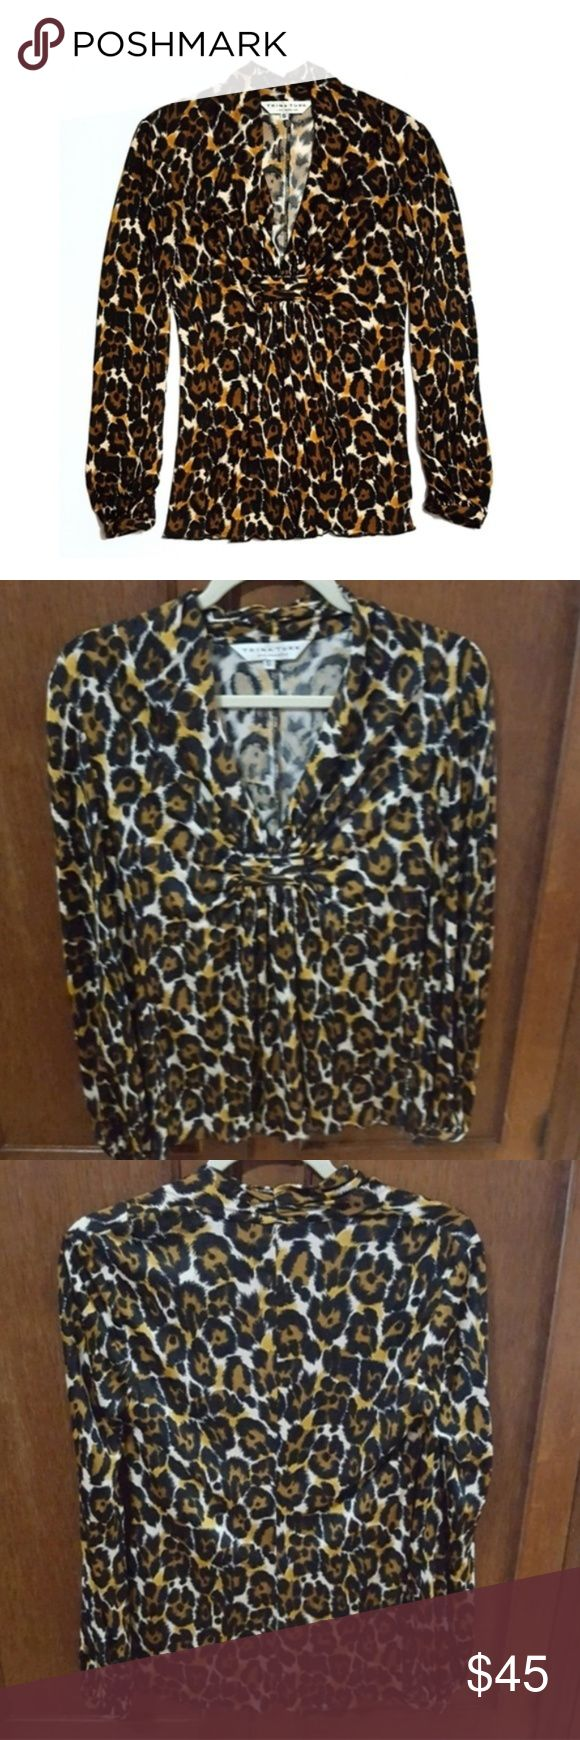 """Trina Turk Leopard Cheetah Print 100% Silk Top Pristine condition. Super soft. Beautiful leopard/cheetah design. V-neck. Wonderful details such as silk buttons at wrists. Dressy and classy.  Shoulder to shoulder approx 16"""" when flat, armpit to armpit 16"""", sleeve 24 1/4"""", length from shoulder 23.5""""  For reference, I'm 5'6 and 34-27-34 and this has a great fit. Trina Turk Tops Blouses"""